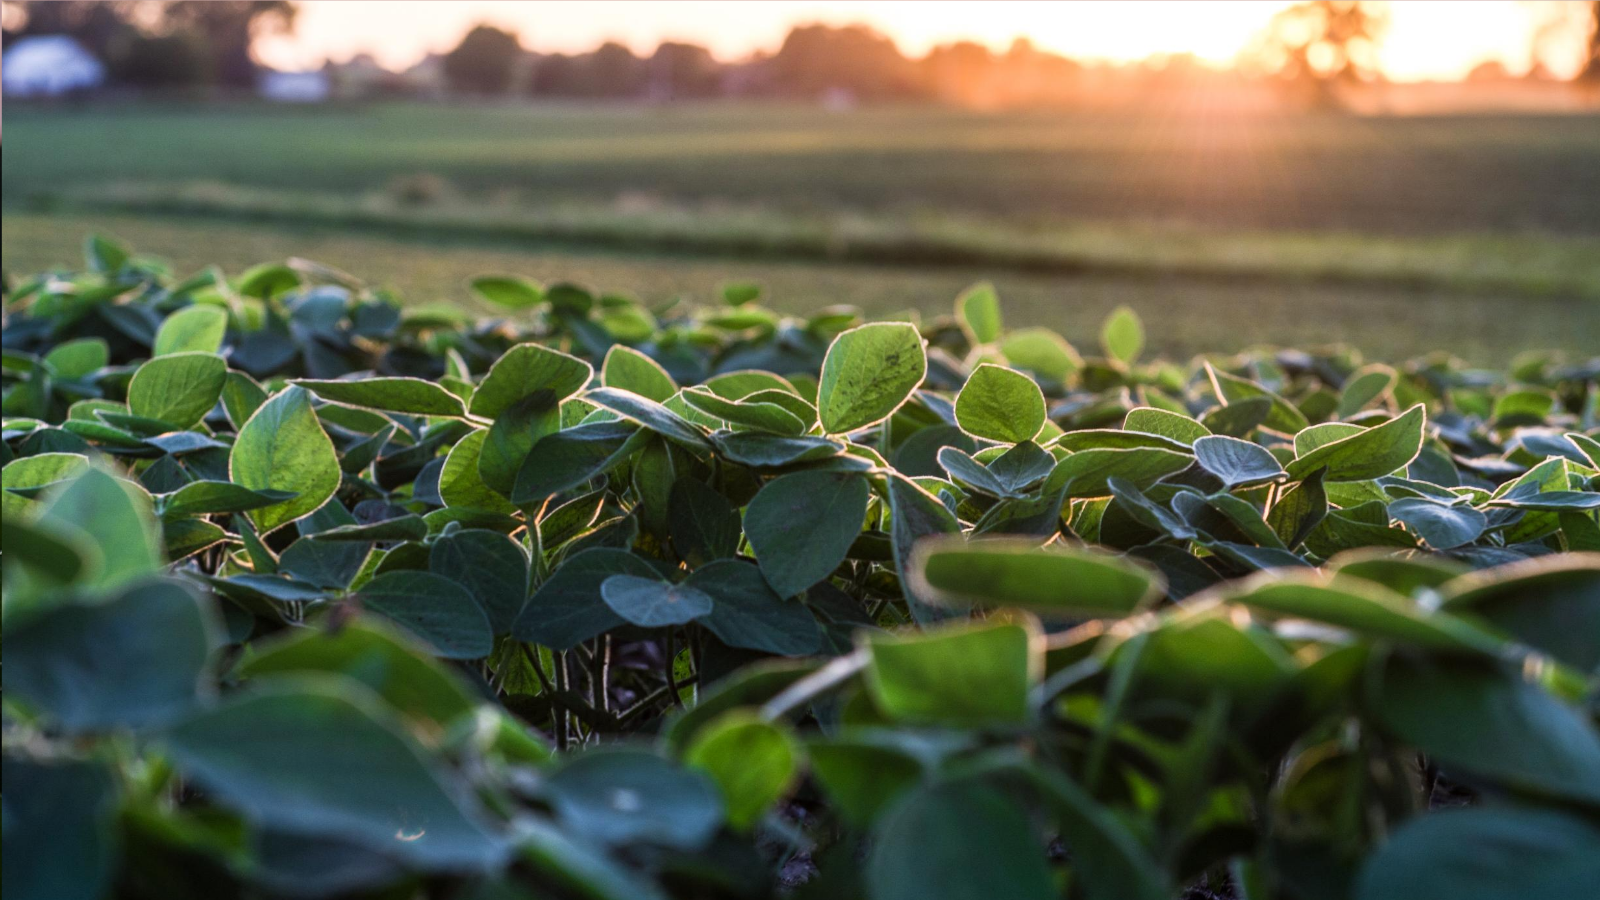 Sunrise over a soybean field.